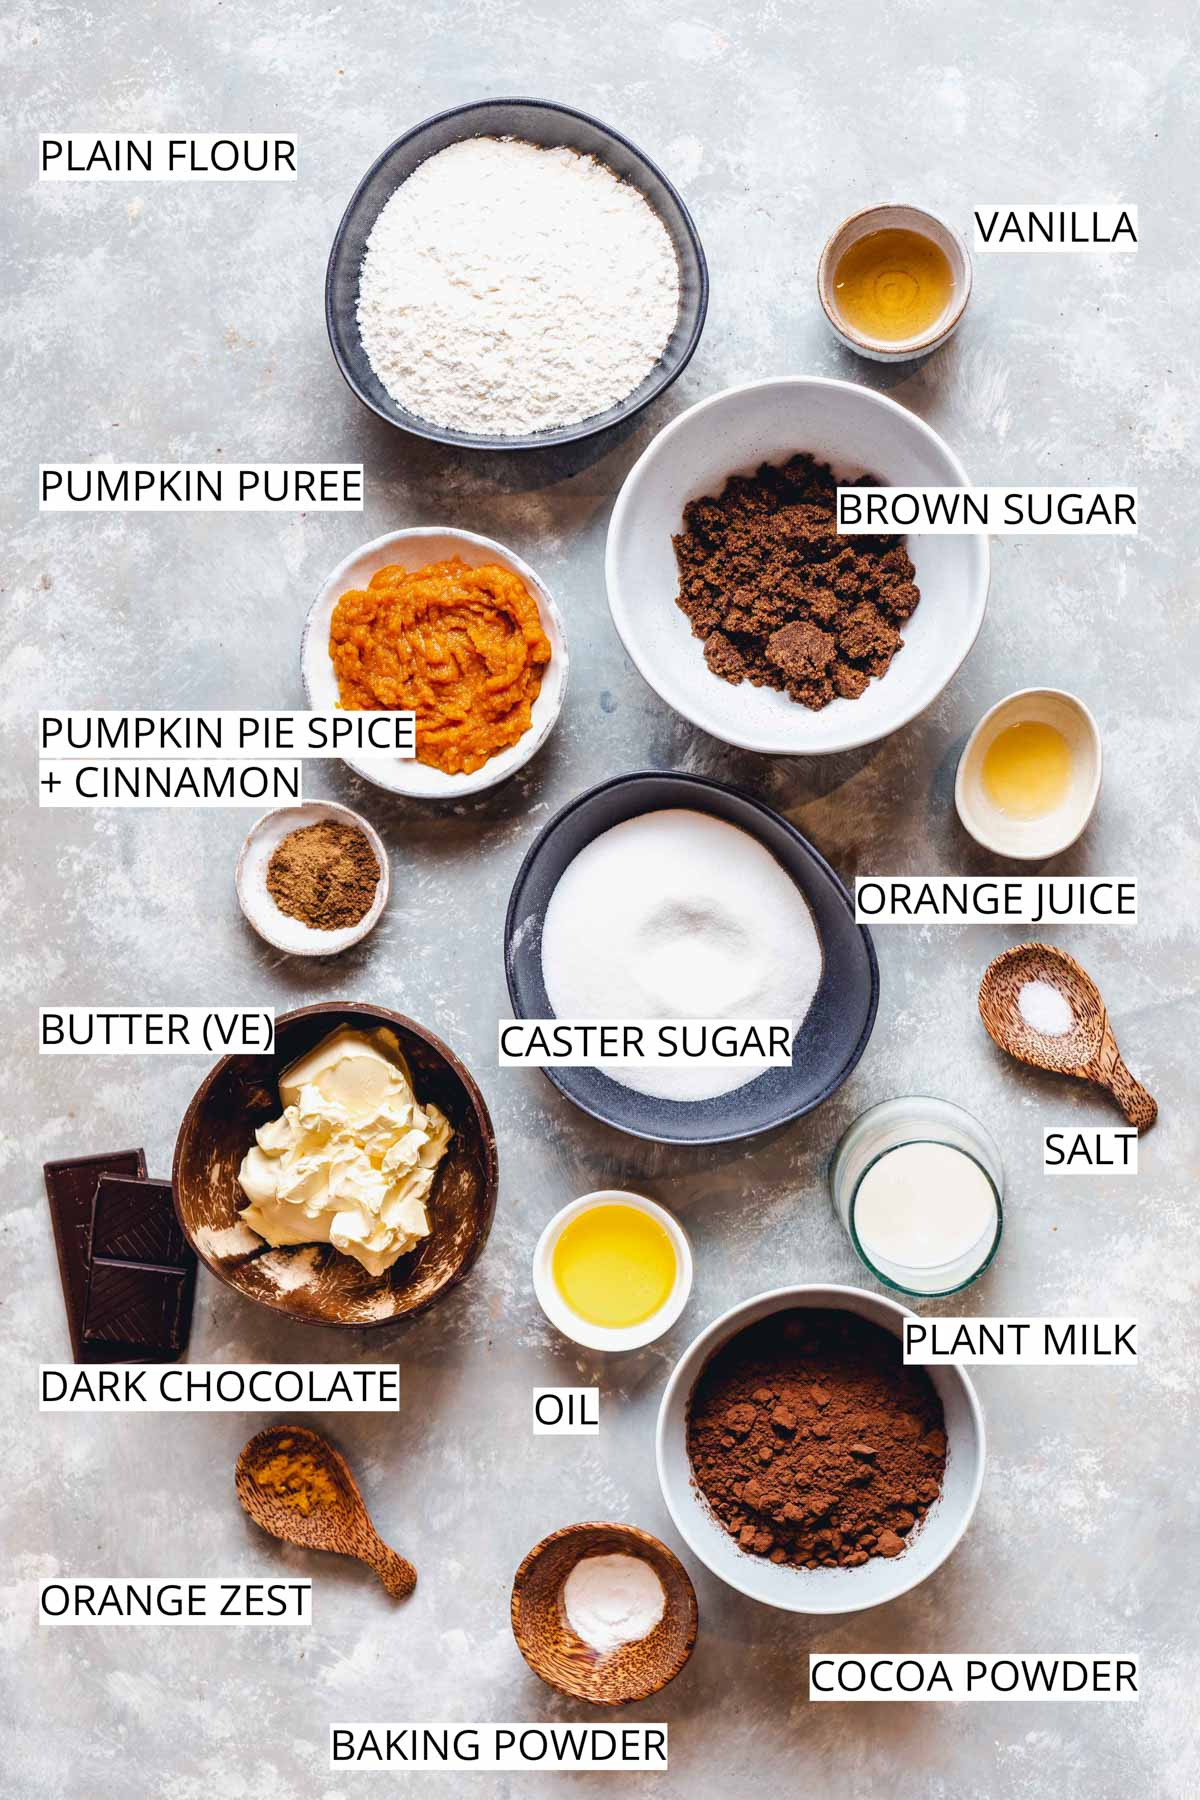 All ingredients needed to make vegan pumpkin brownie placed on a flat grey surface.